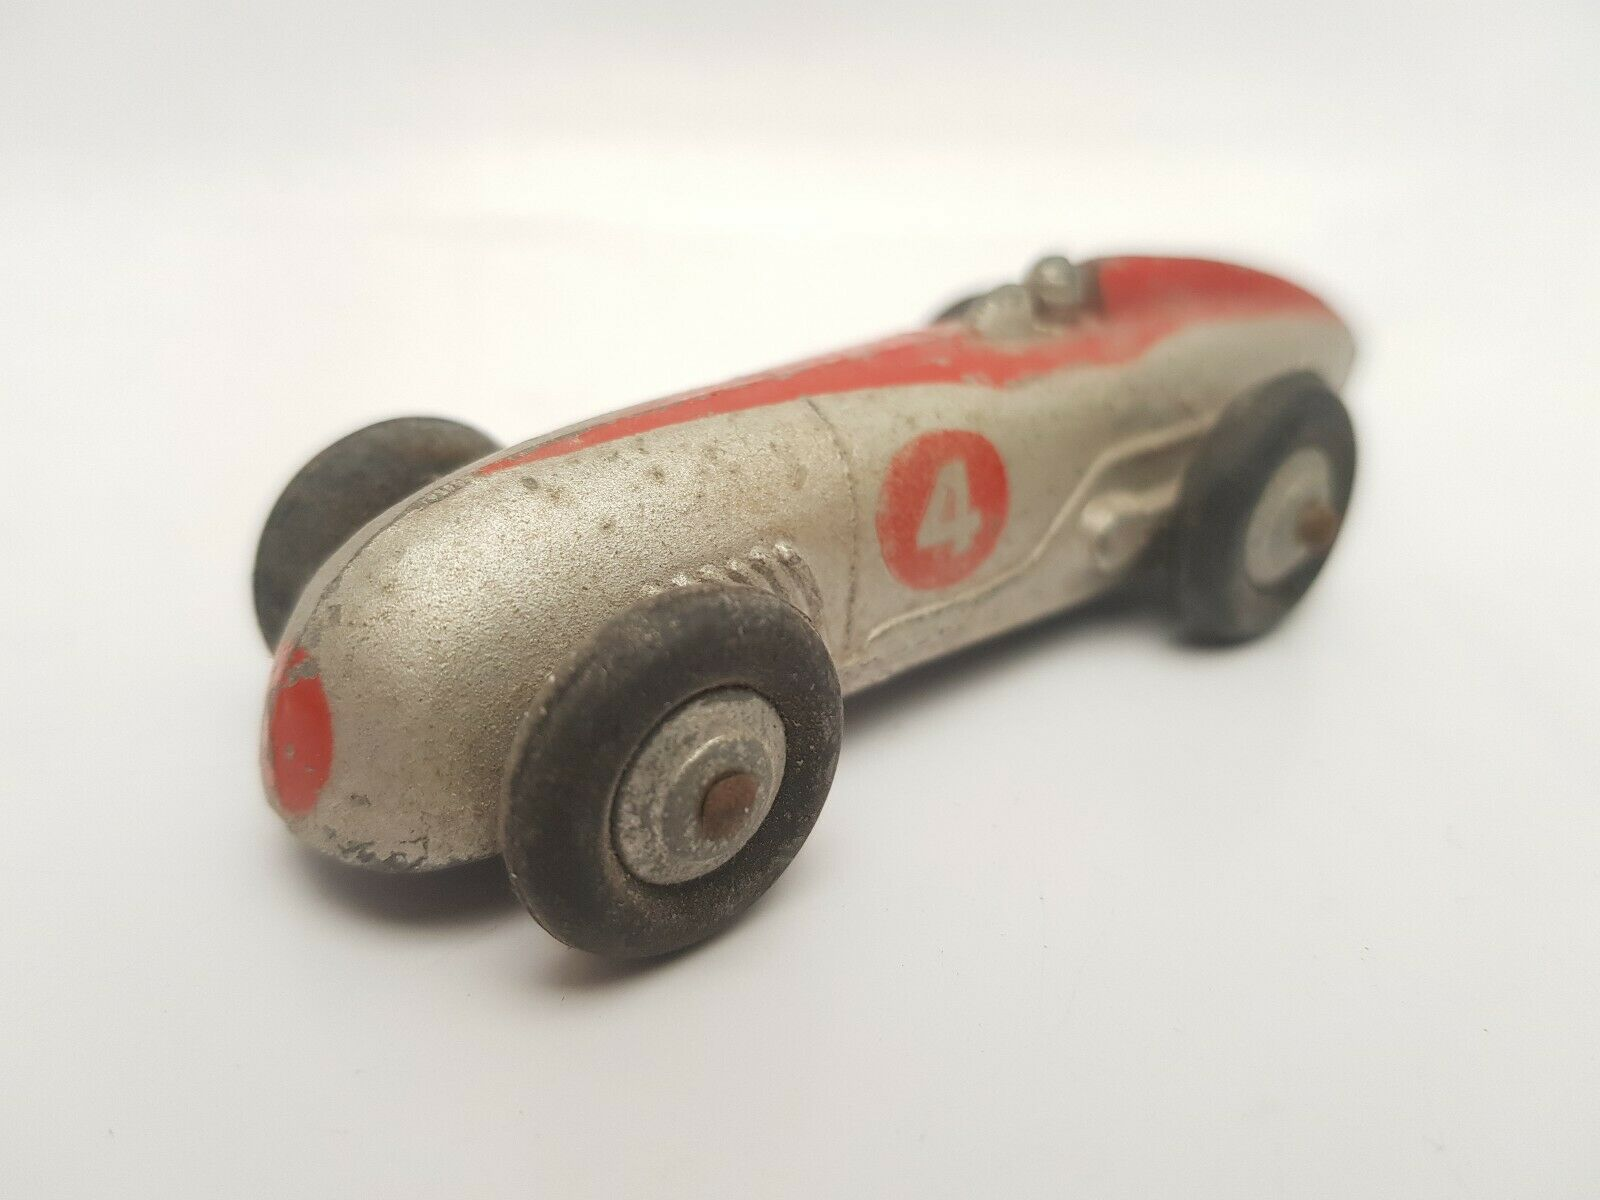 Dinky 23a Racing Car 1946 - 52 silver & red red with silver hubs & rounded axles